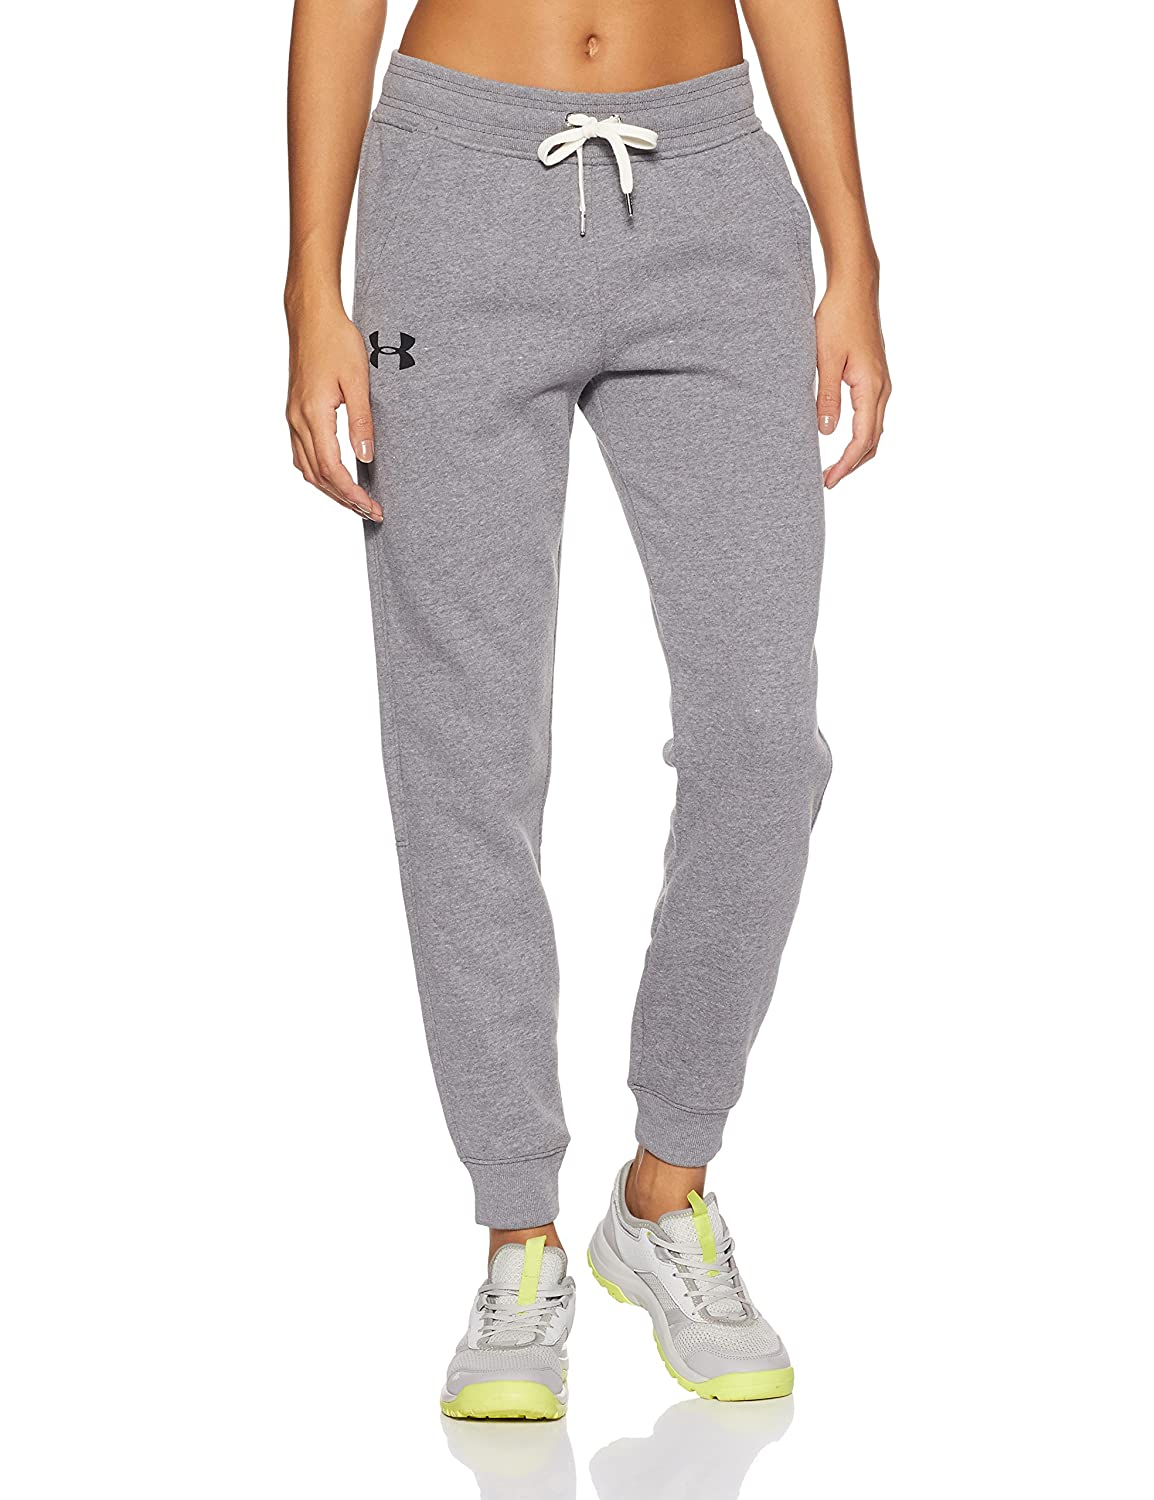 (アンダーアーマー) UNDER ARMOUR UA FAVOIRTE FLEECE PANT B0721NN46Nカーボンヘザー/ブラック Small Short